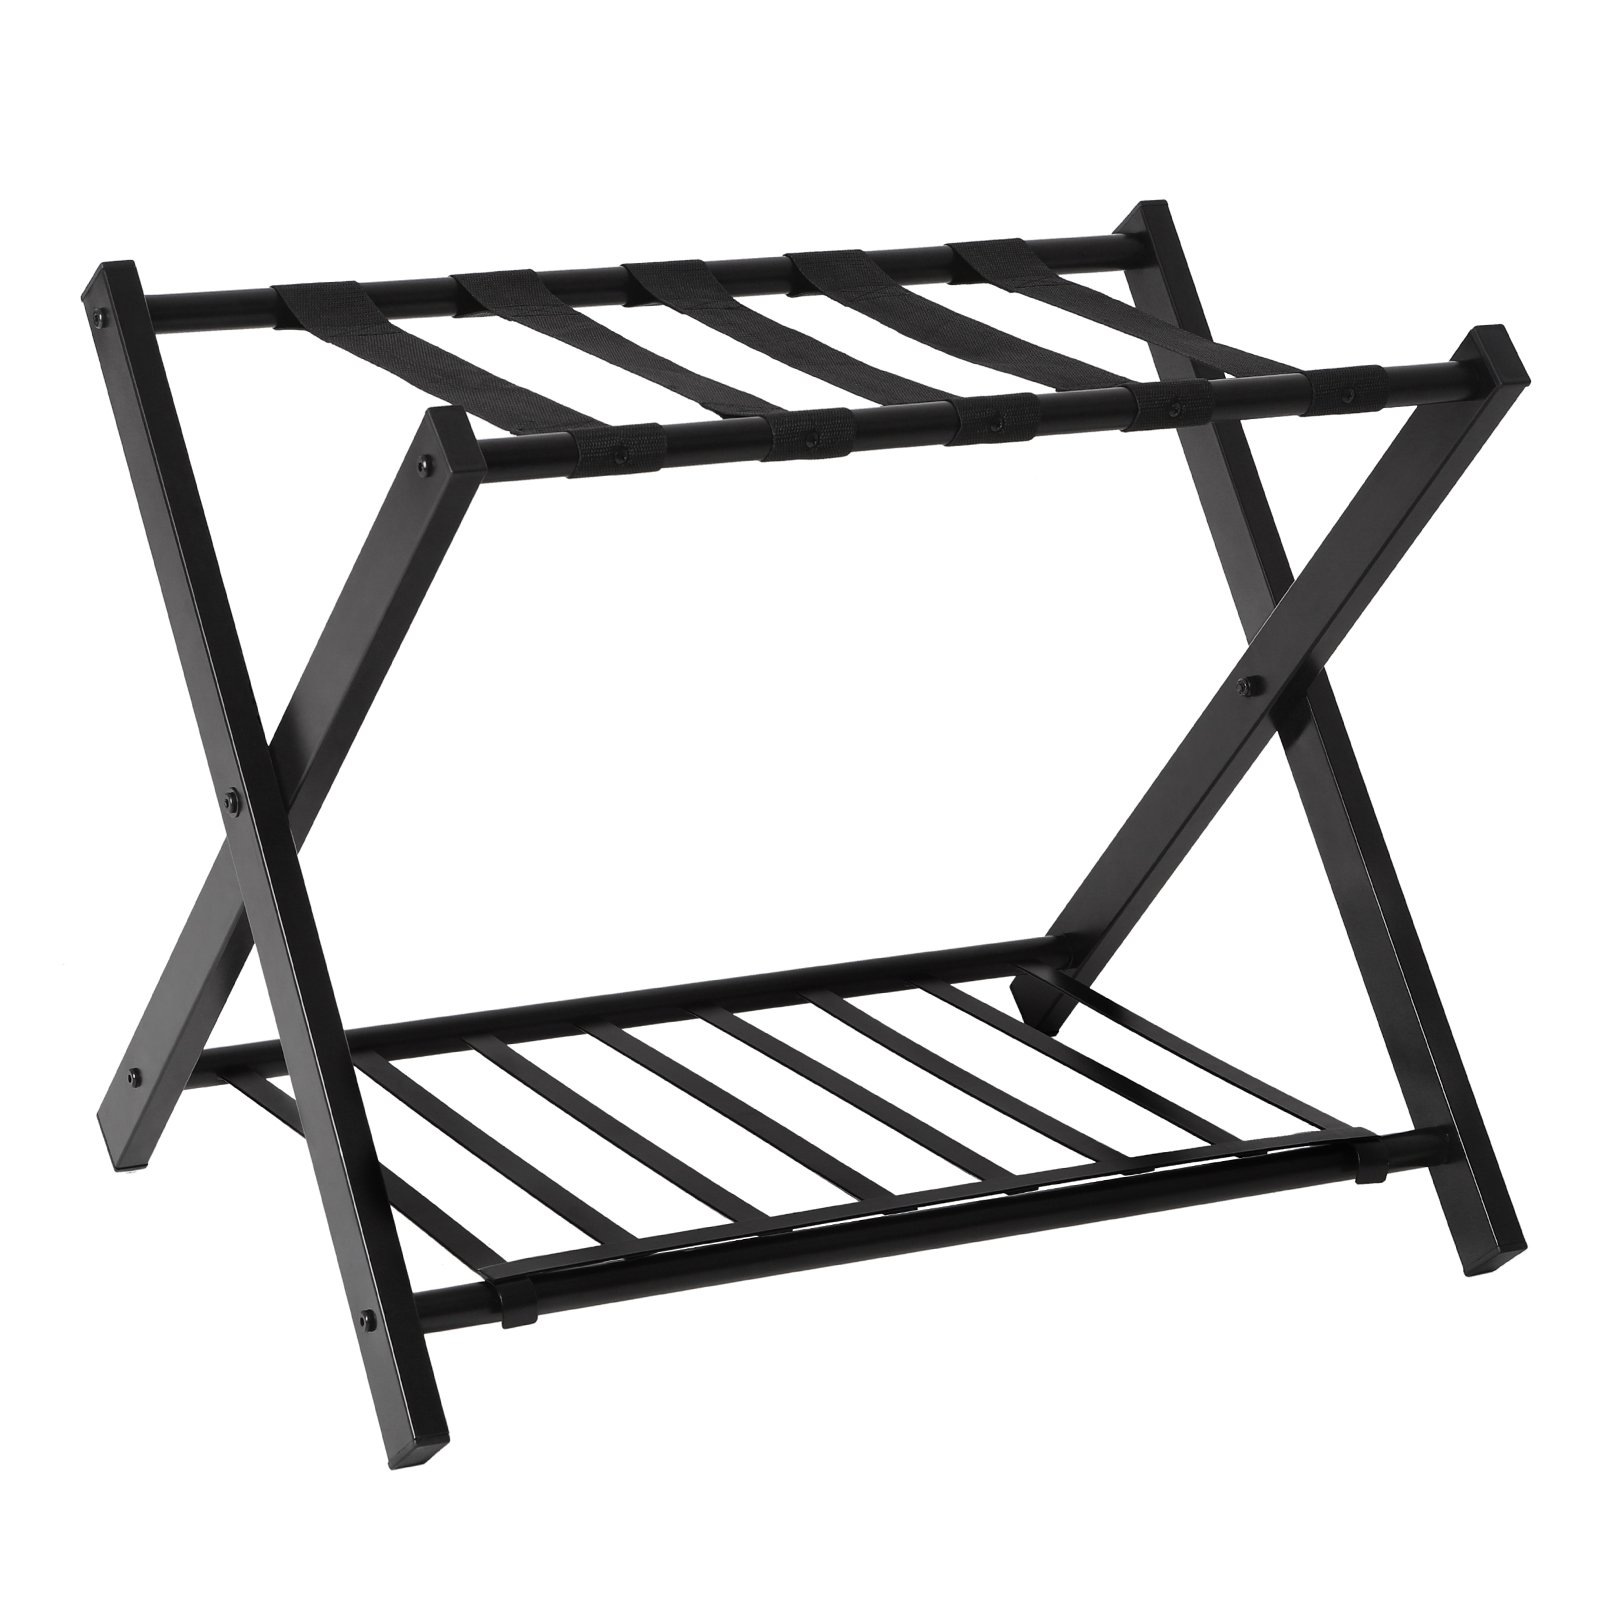 SONGMICS Metal Folding Luggage Rack with Shelf Luggage Stand for Suitcase for Home Bedroom Guestroom Hotel Rooms Black URLR65B